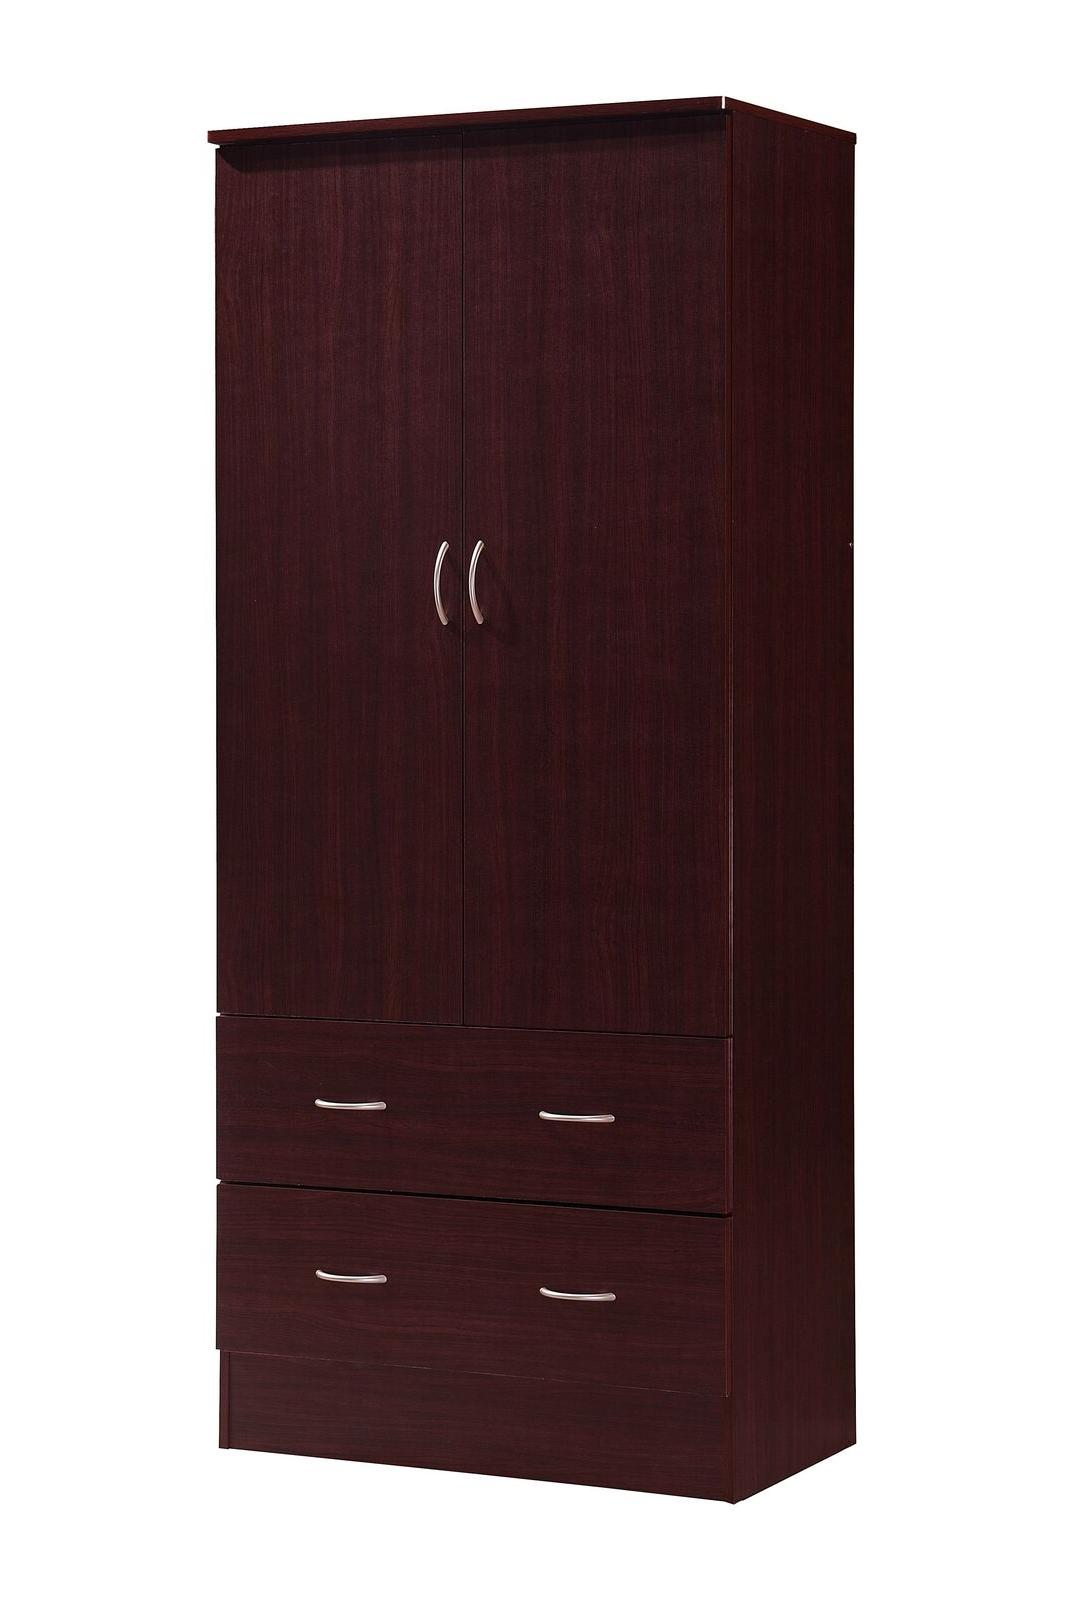 Bedroom Armoire mahogany wardrobe cabinet wood